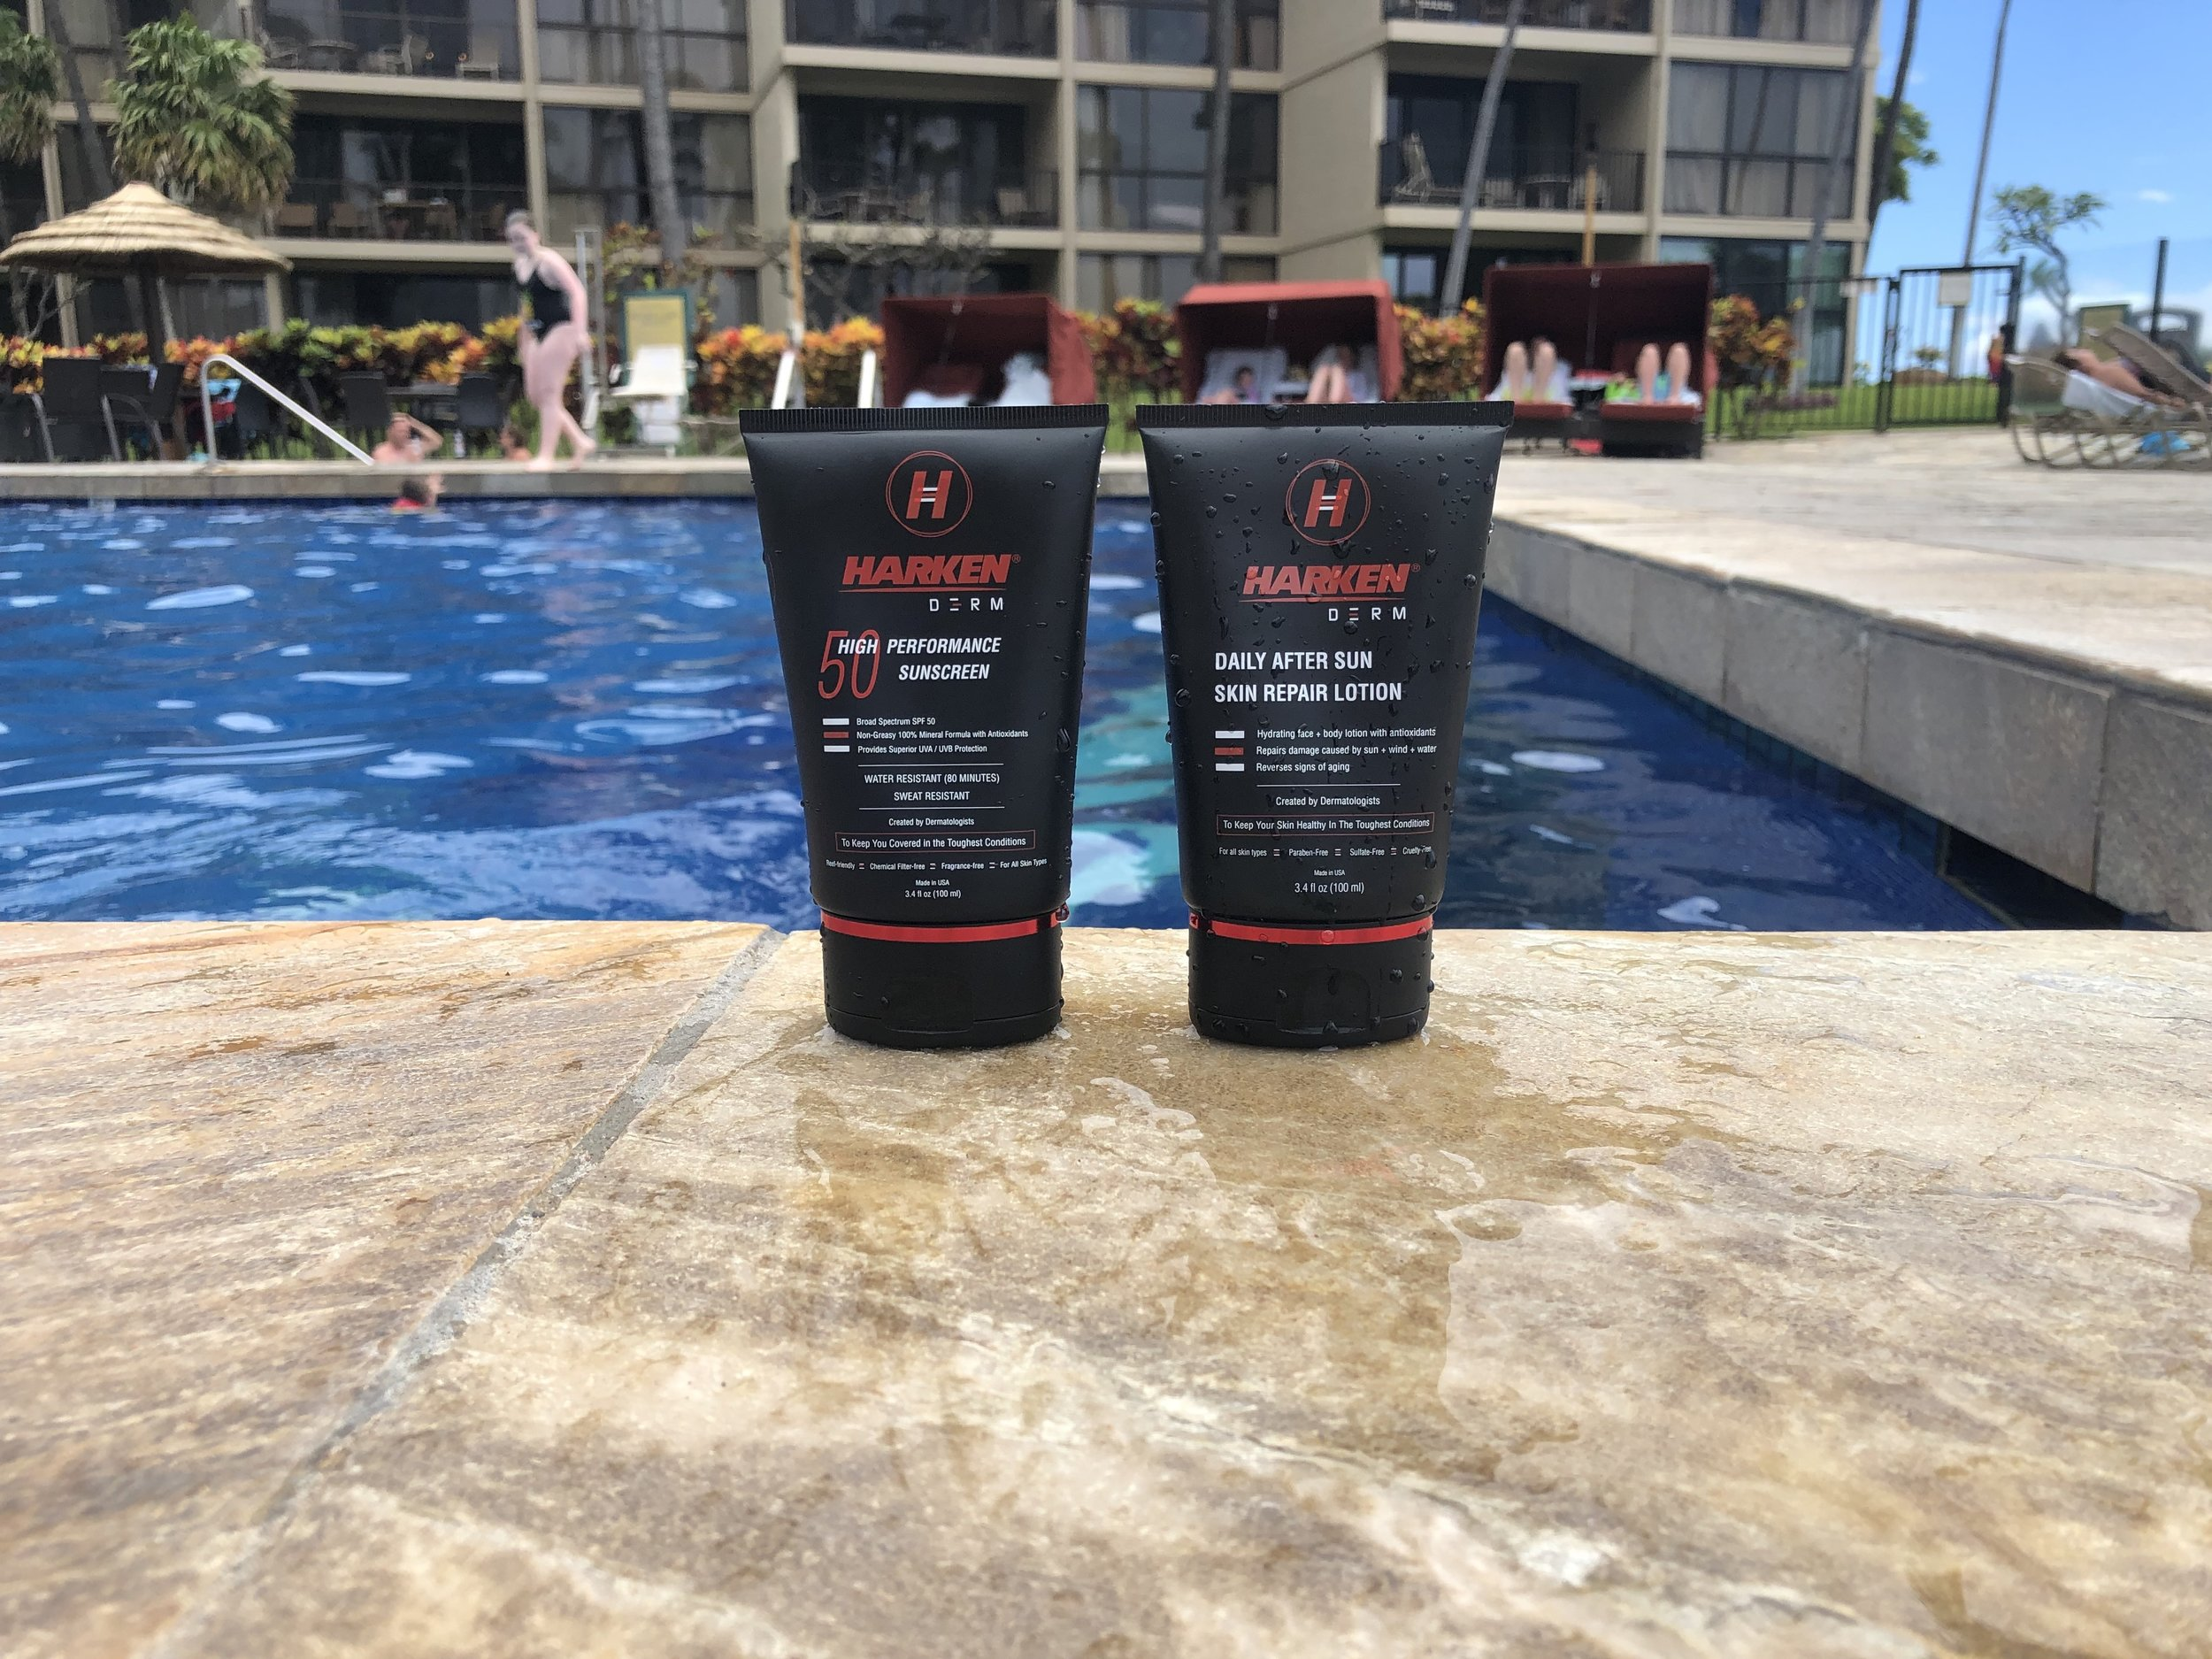 harken-derm-photo-hawaii-maui-best-safe-sunscreen-pool-mineral-kaanapali-04-23-2019.jpg